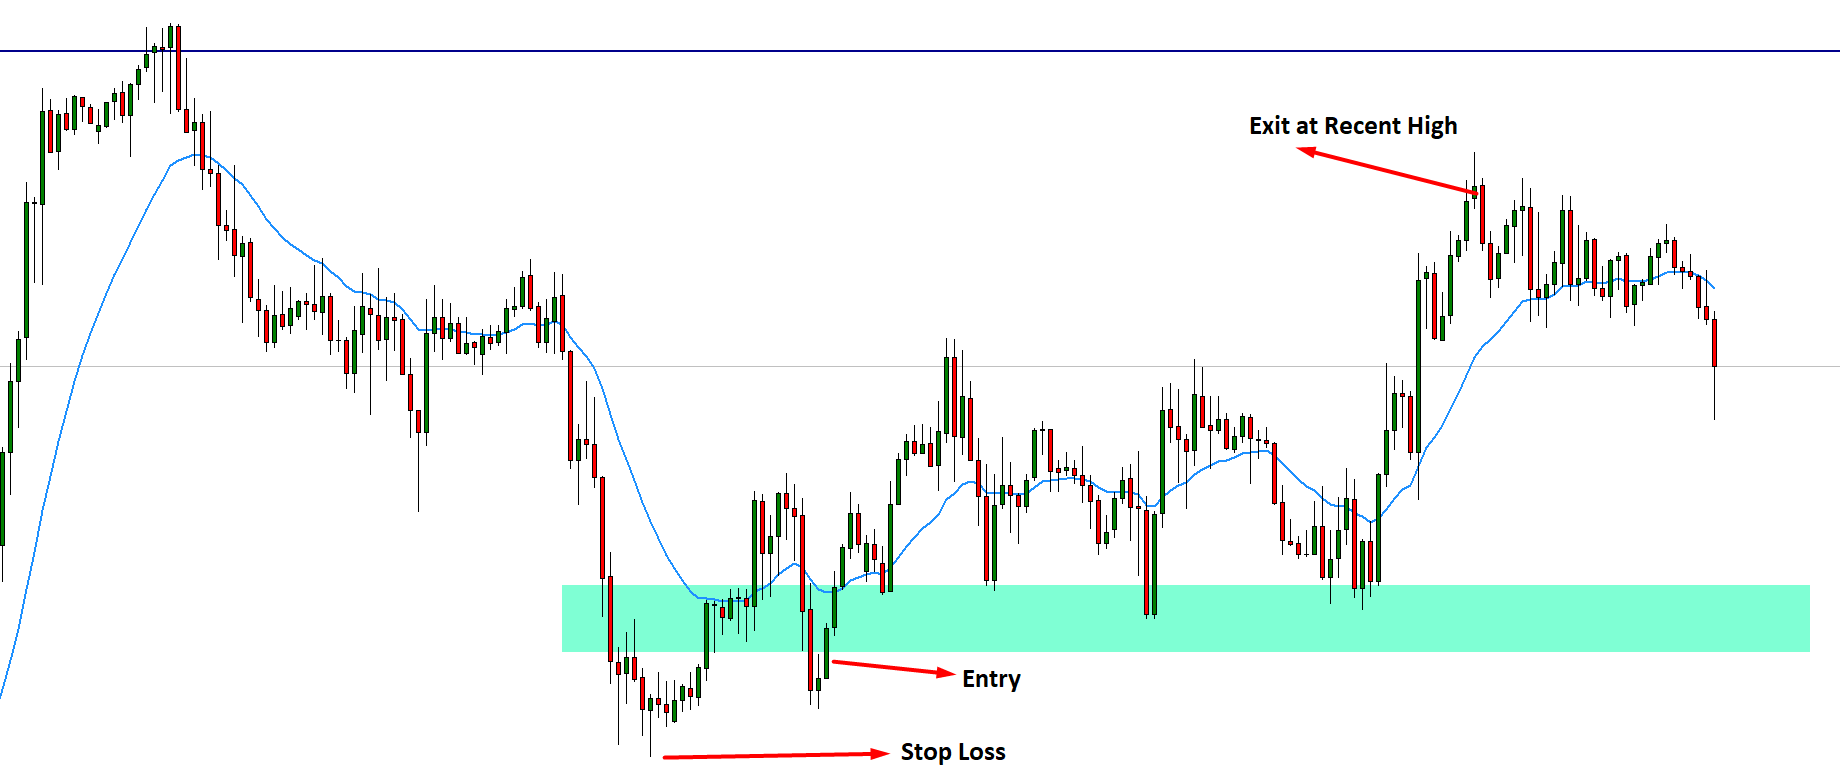 The primary method of taking a buy trade is to buy as close as from support levels where the price moves upwards in the chart pattern.